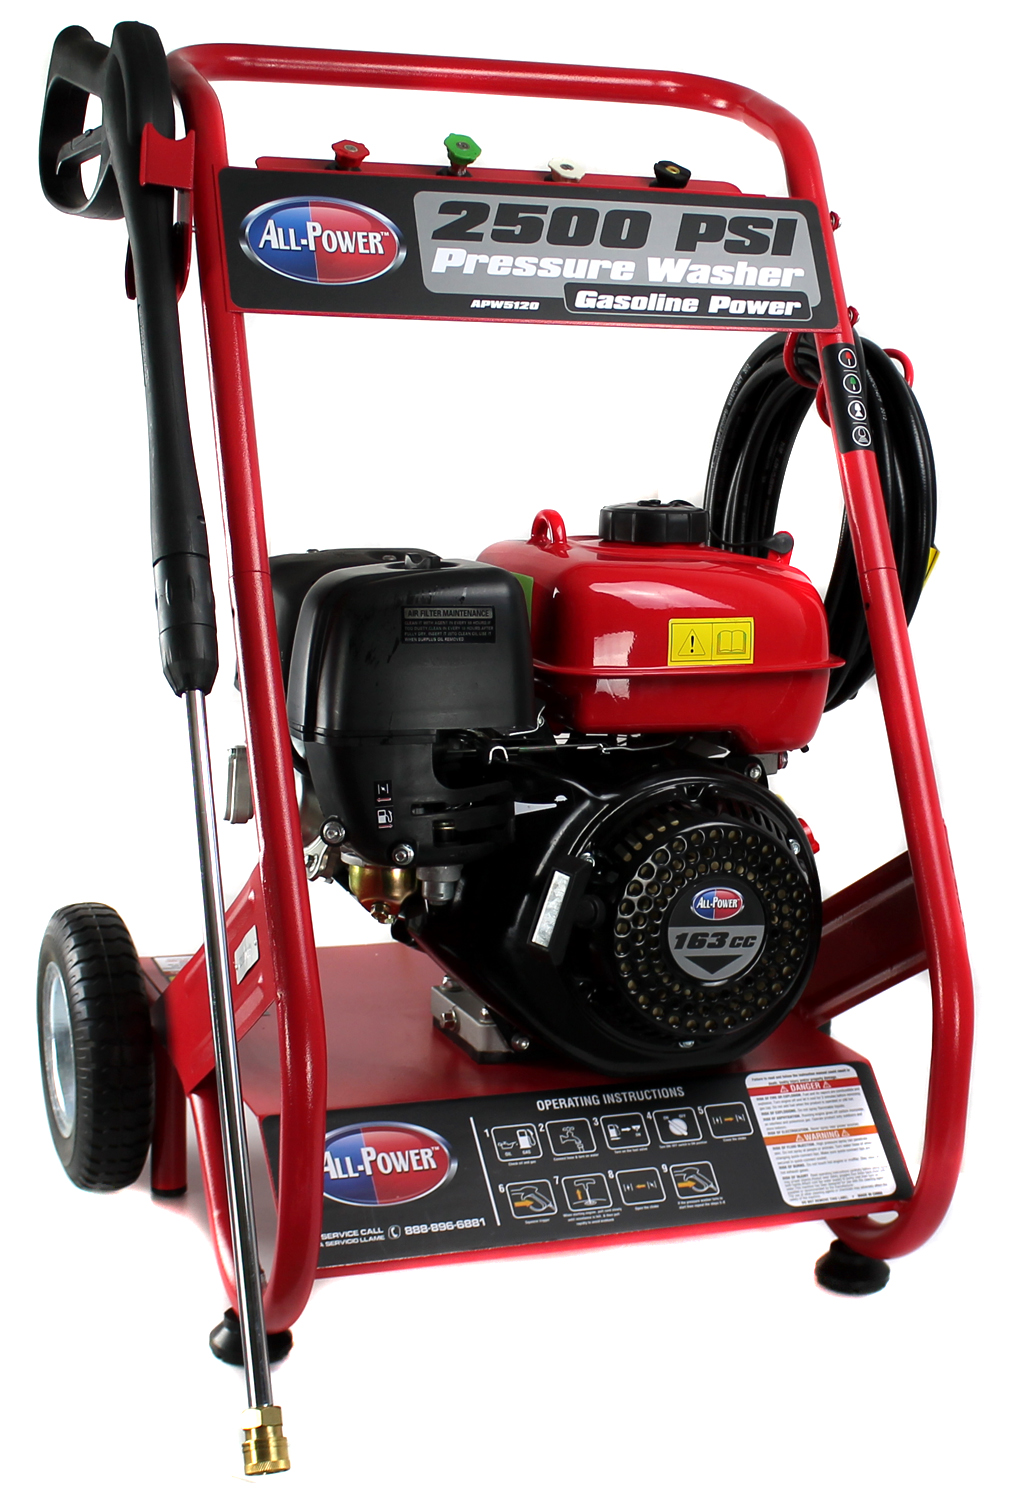 All-Power APW5120 2.5 Gpm 2500 Psi 4 Cycle Gas Powered Pressure Washer